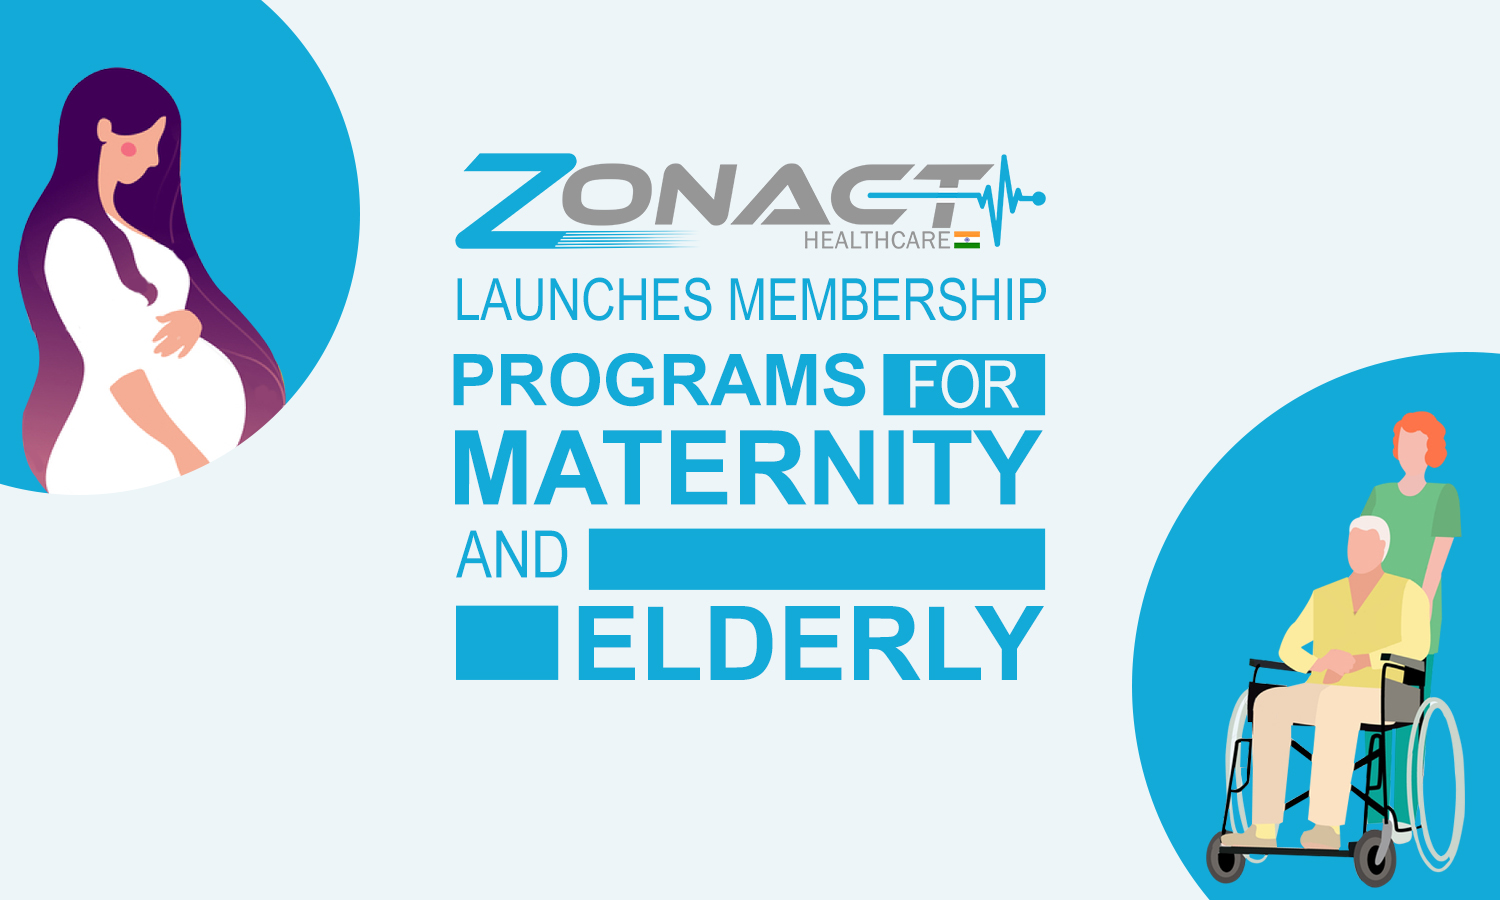 Zonact Launches Membership Programs for Maternity and Elderly 1